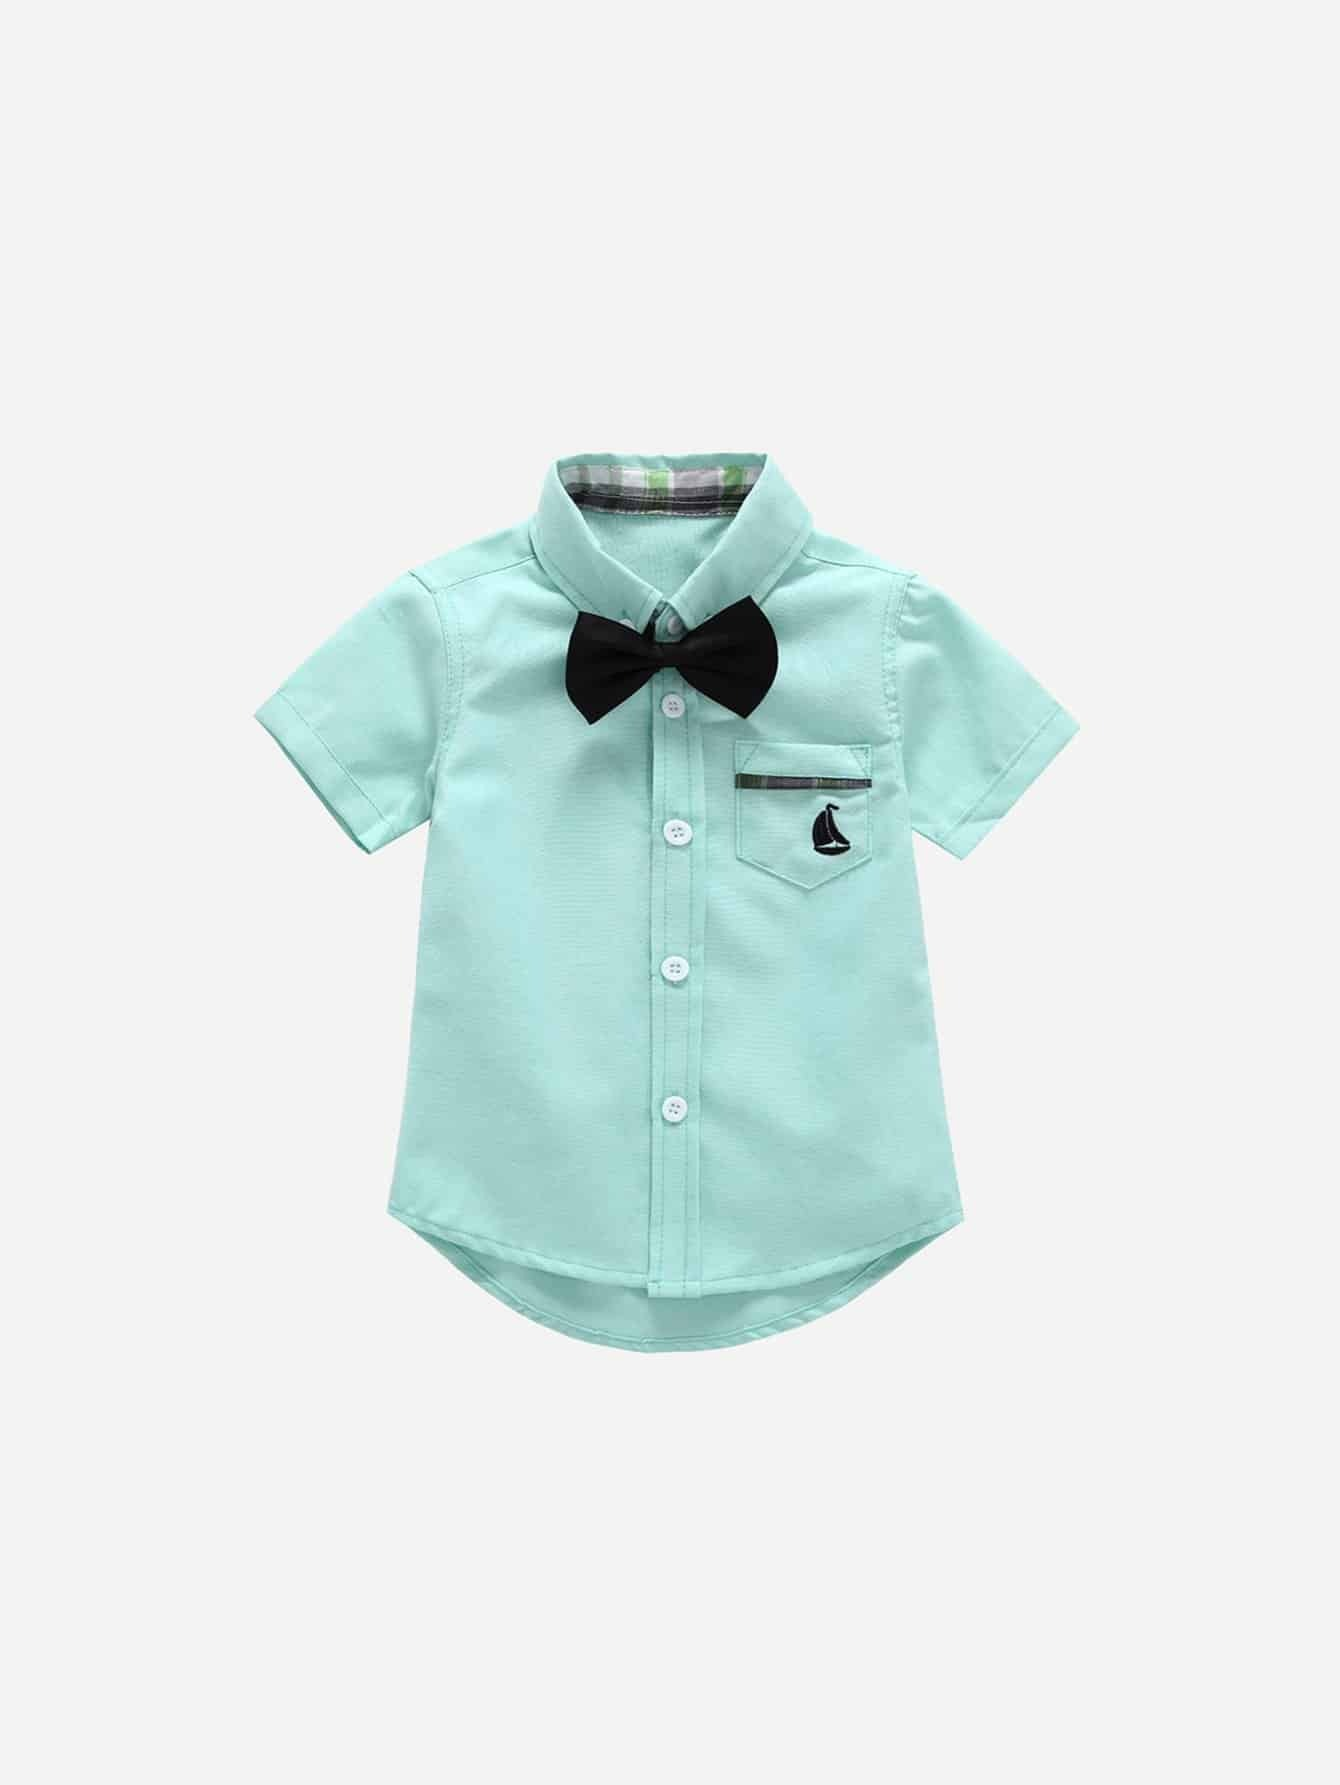 Boys Tie Neck Curved Hem Blouse self tie neck cuffded sleeves curved hem blouse